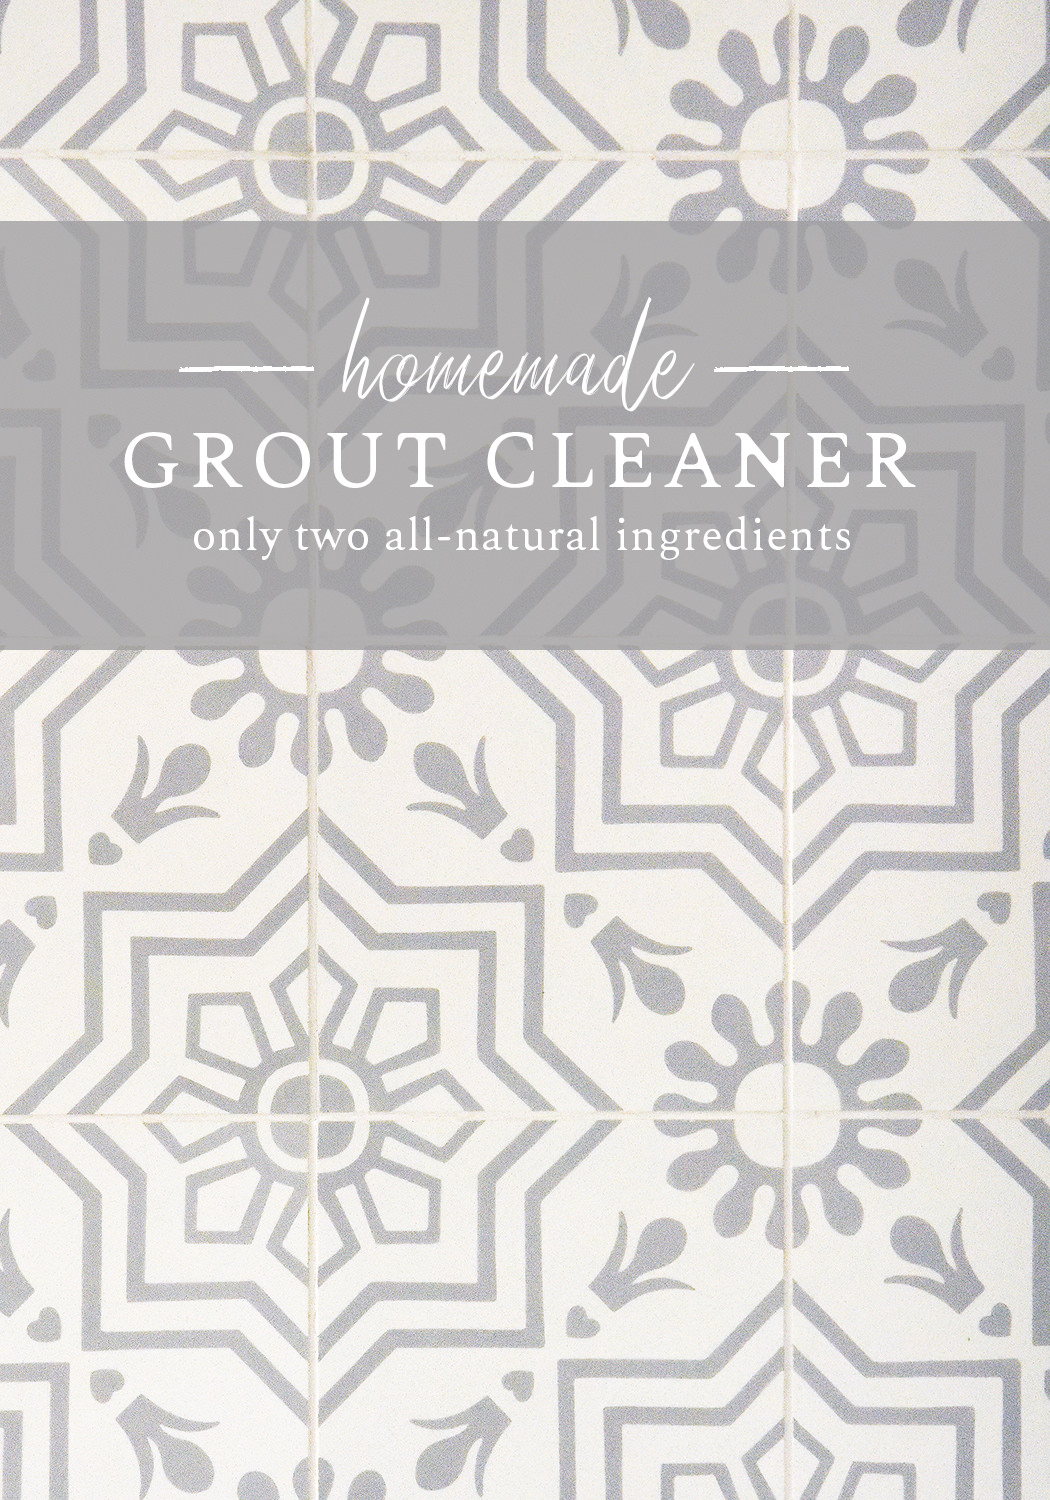 All-natural homemade grout cleaner to green clean your home! #greencleaning #naturalcleaning boxwoodavenue.com